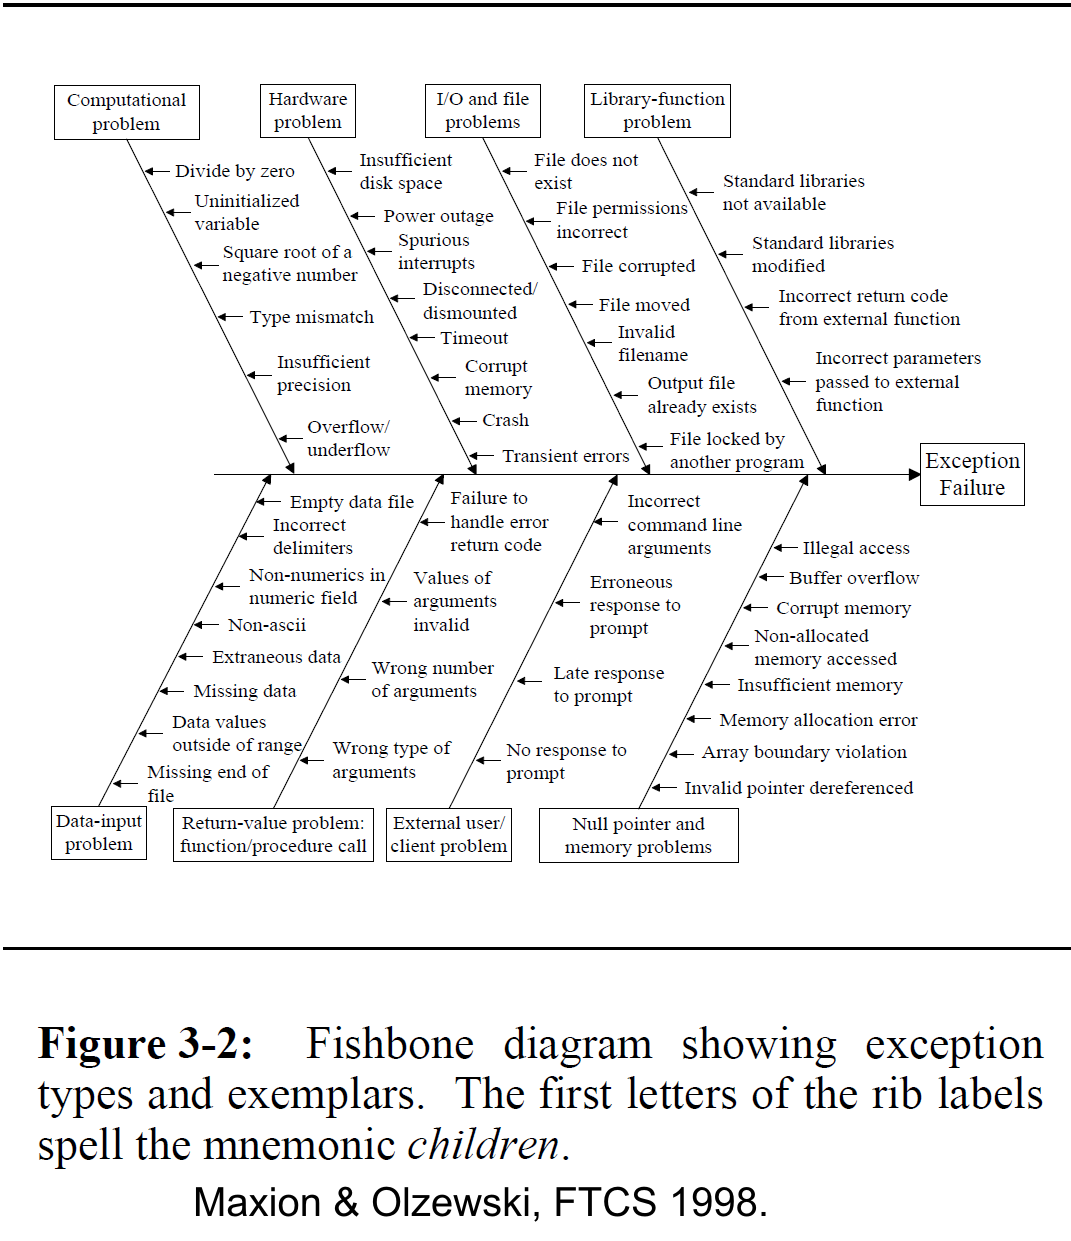 fish bone diagram from a case Using fishbone analysis to investigate problems 5 key points 1visual diagrams can be helpful in  fishbone analysis in practice – a case study  session that uses the fishbone diagram to identify issues relating to a clinical pathway or process review (box 1) (nhs iii,.